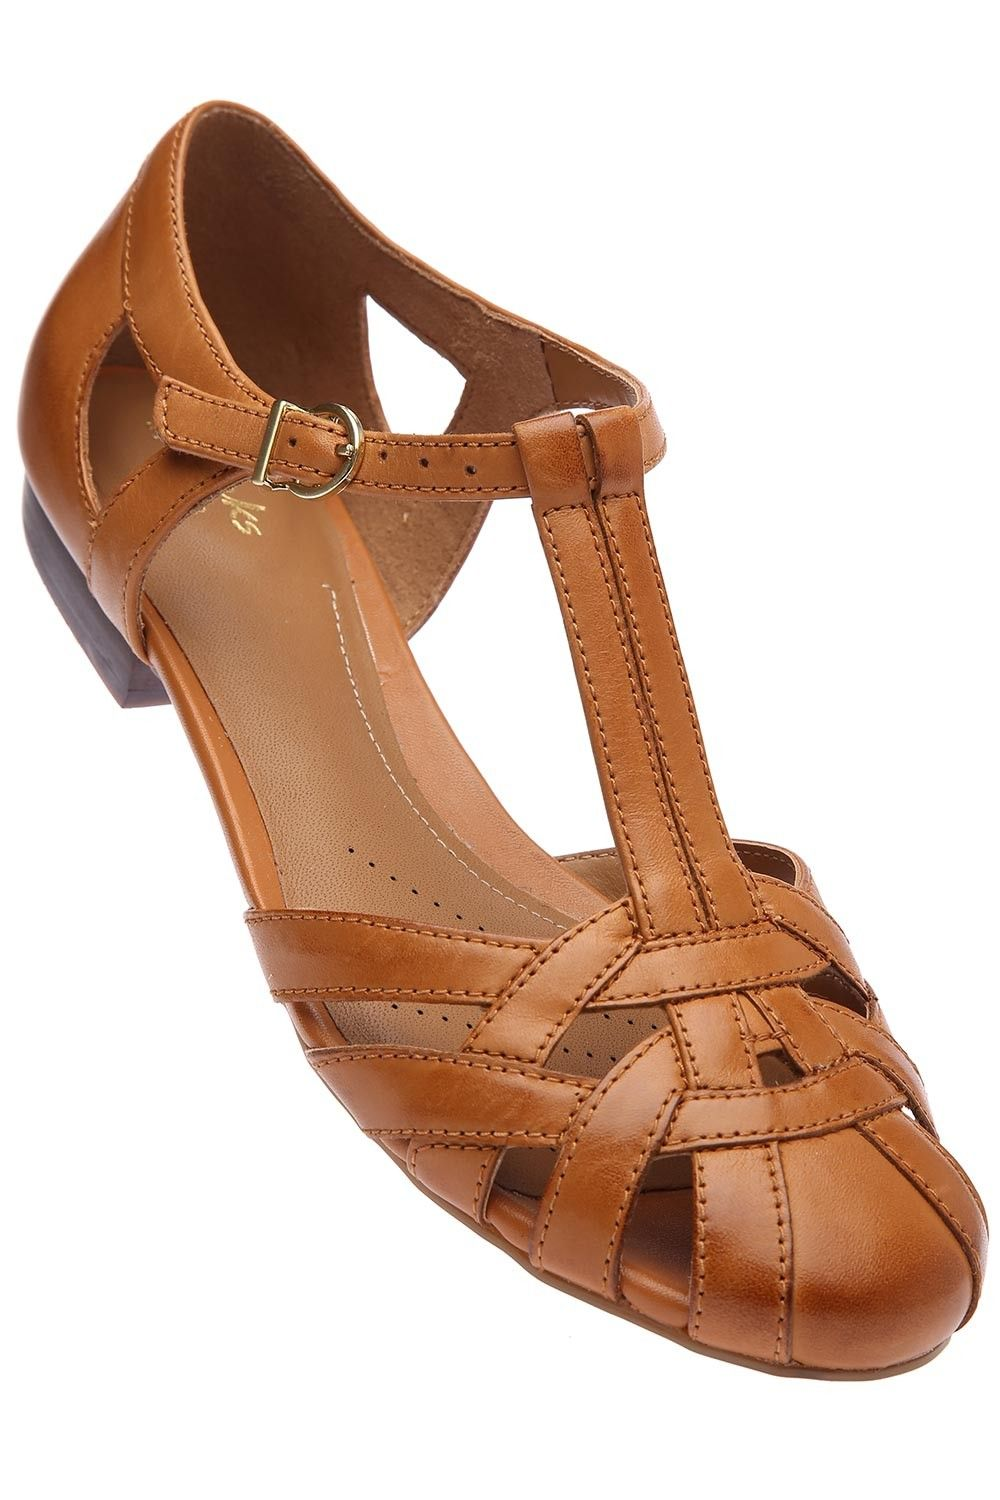 clarks womens ankle closure flat sandal s for shoes